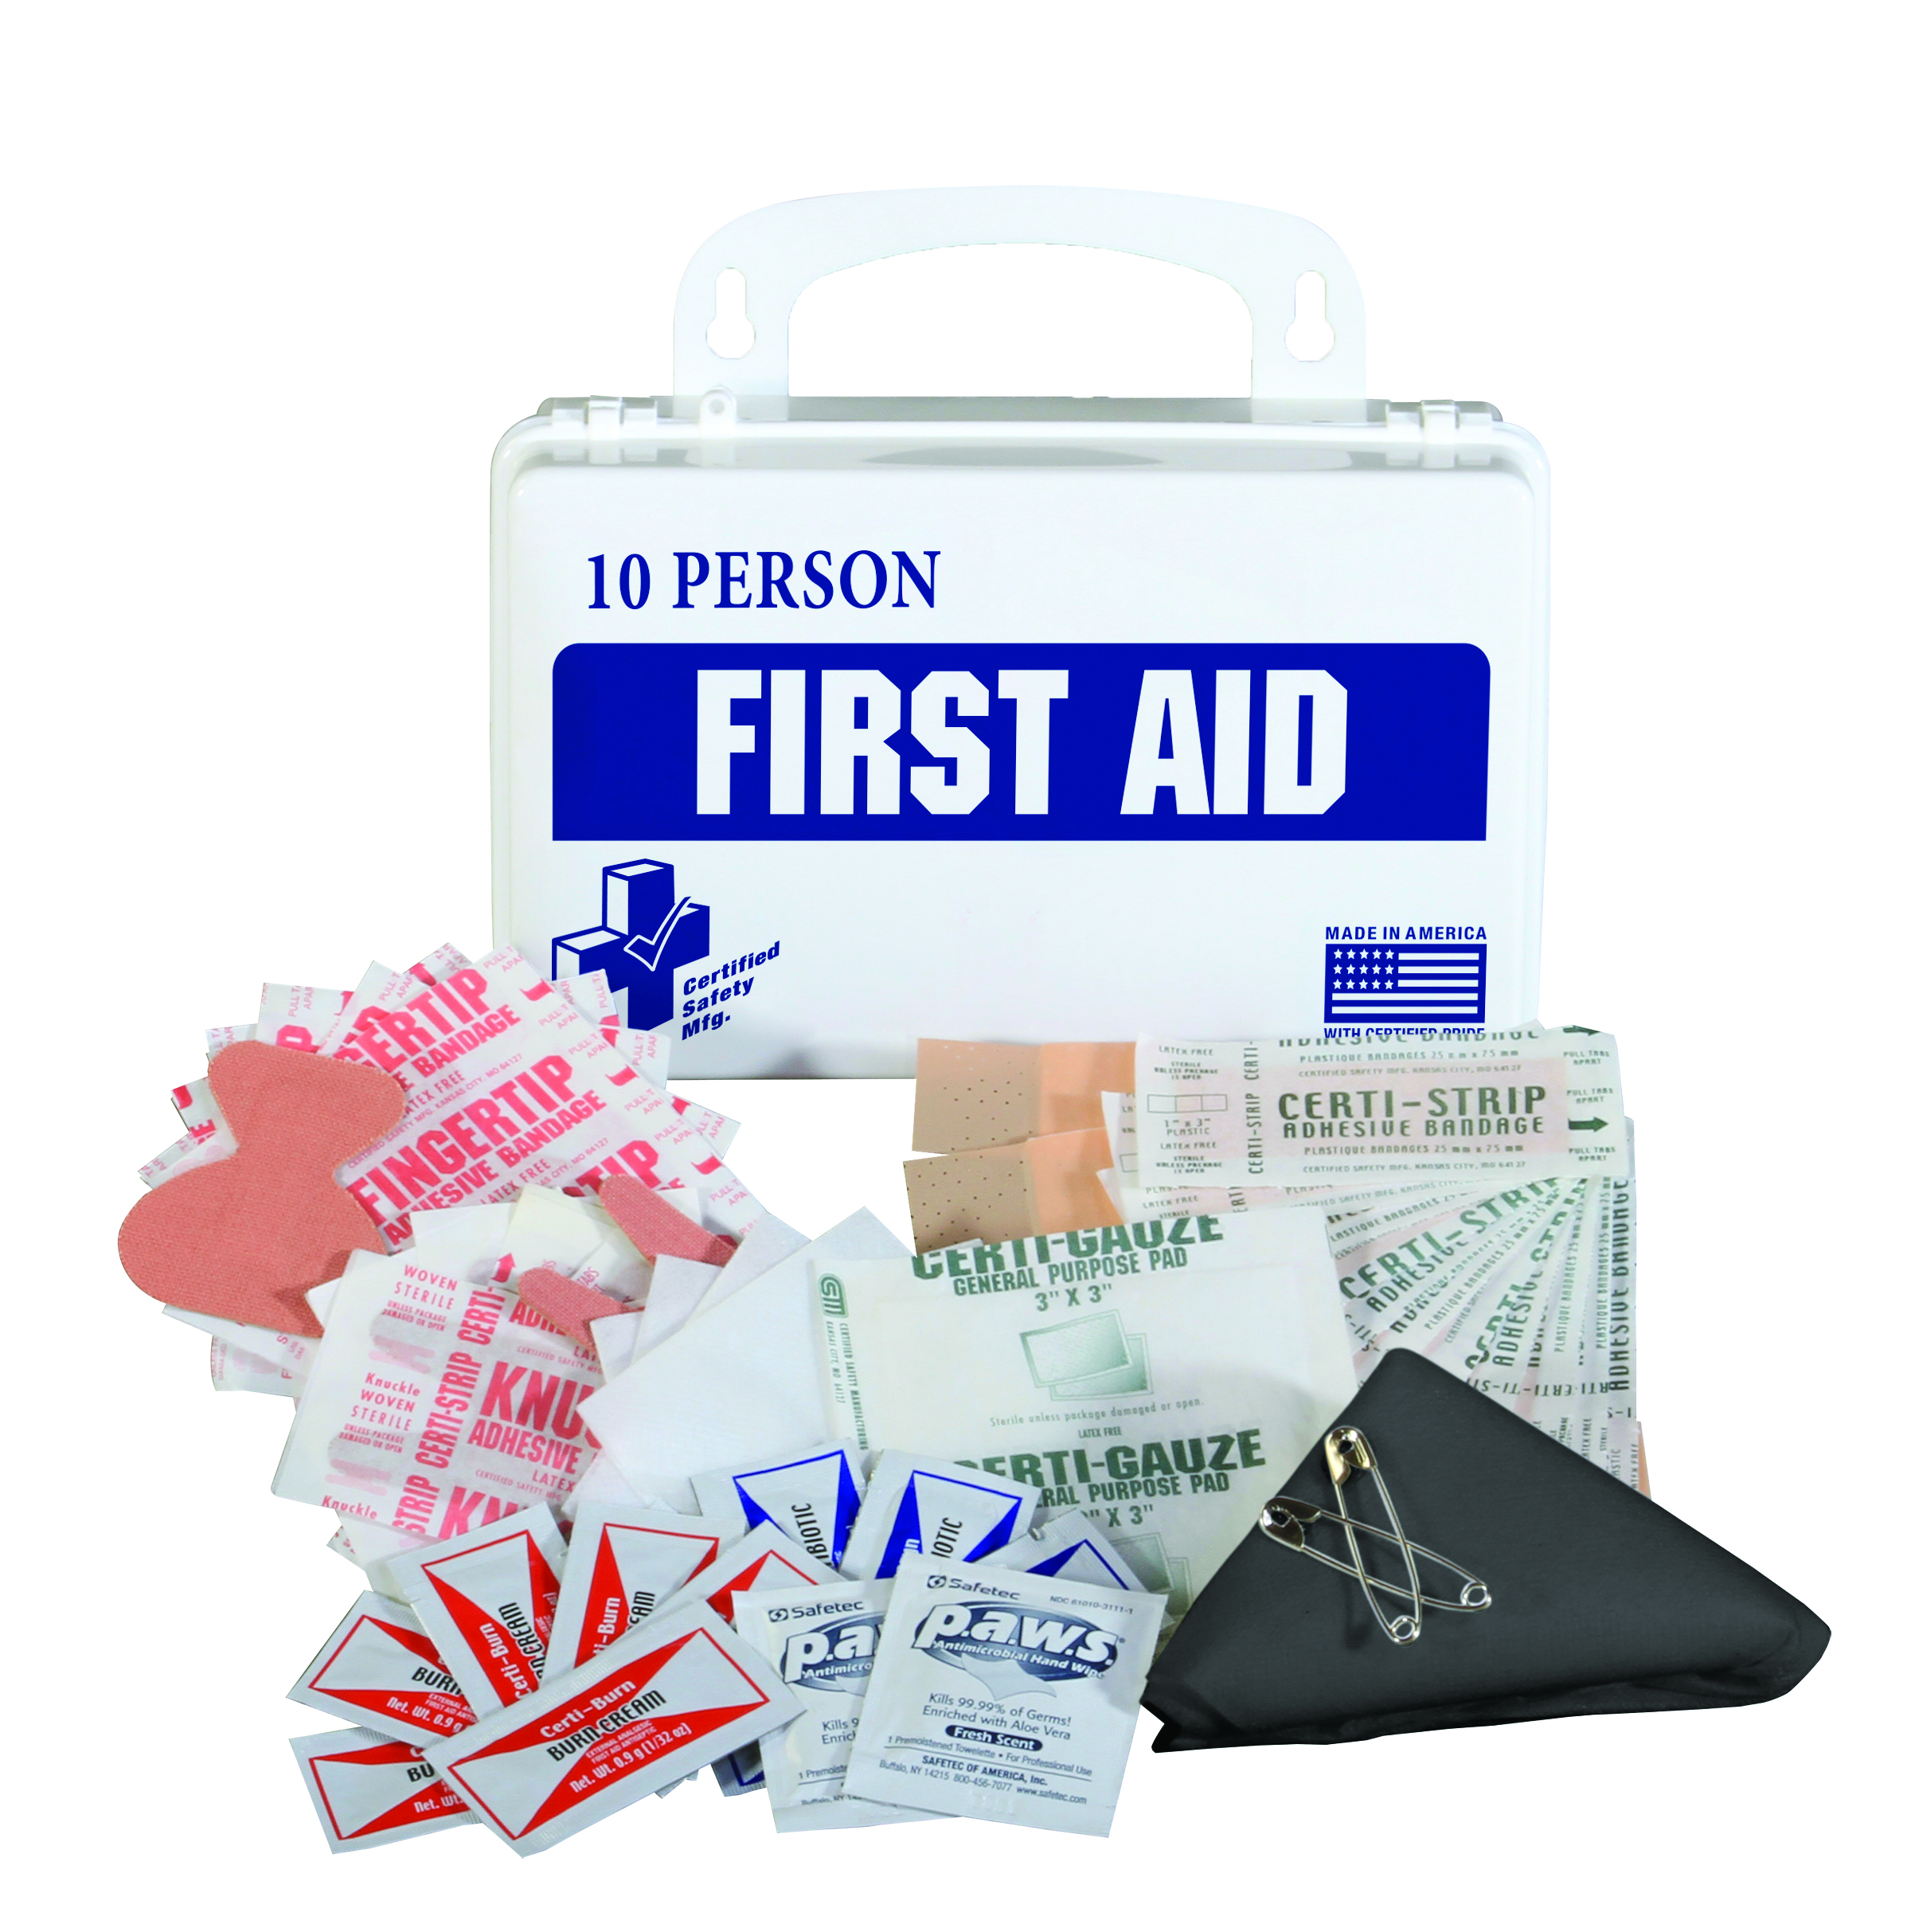 K610-029                       - Classic First Aid Kit - 25 Person-Classic First Aid Kit-16PW - 25 Person First Aid Kit w/ Eyewash----UOM: 1/EA